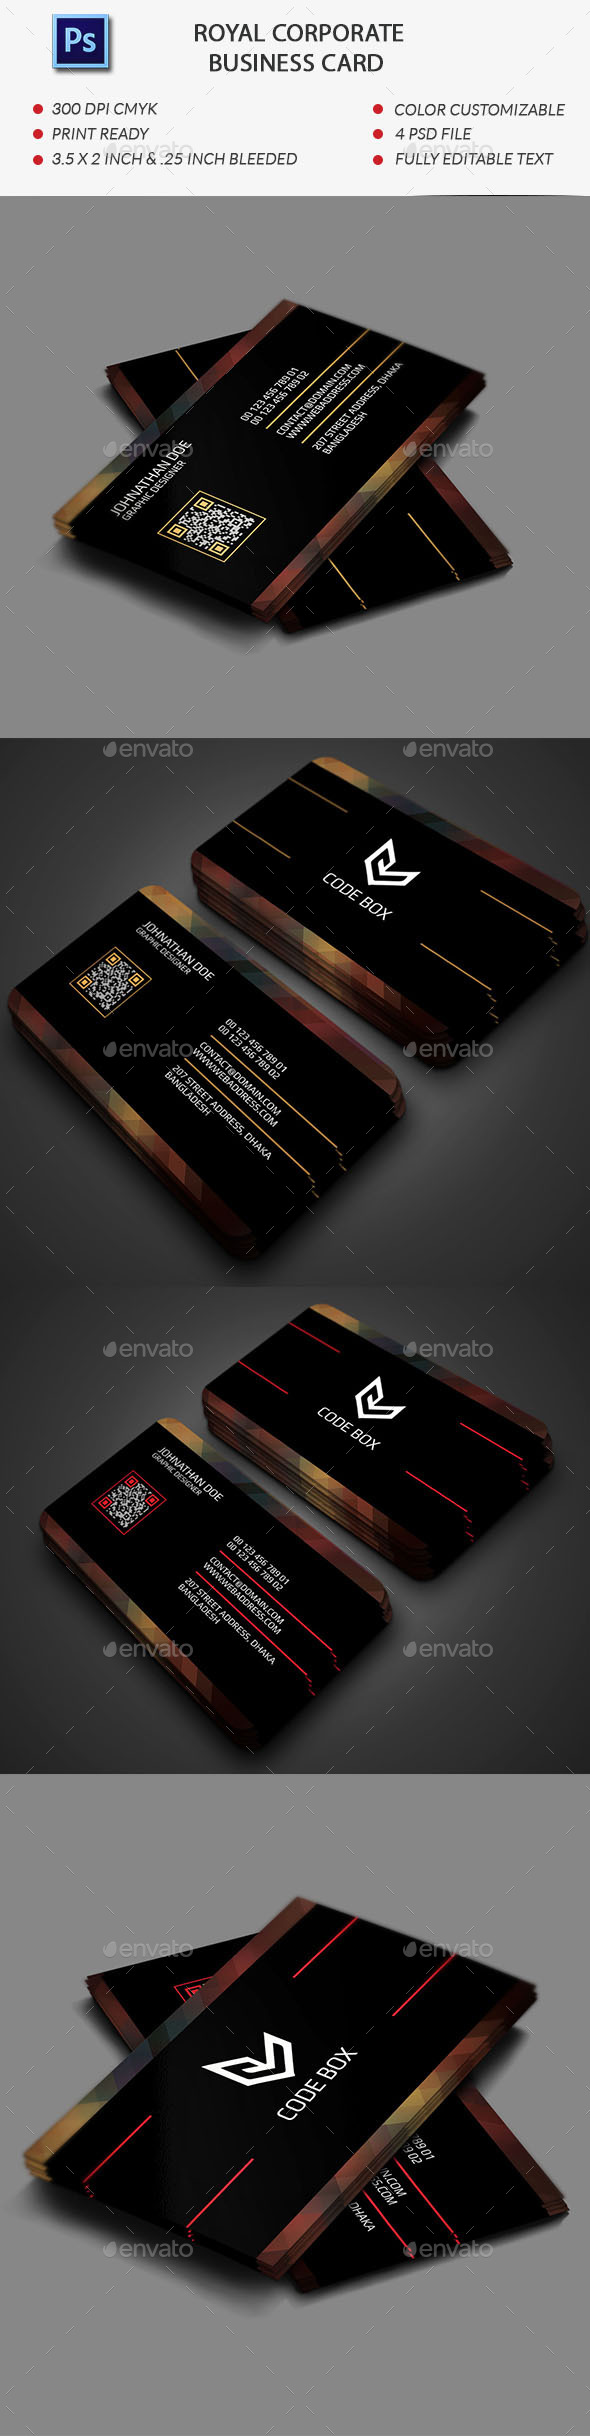 Royal Corporate Business Card Template - Business Cards Print Templates